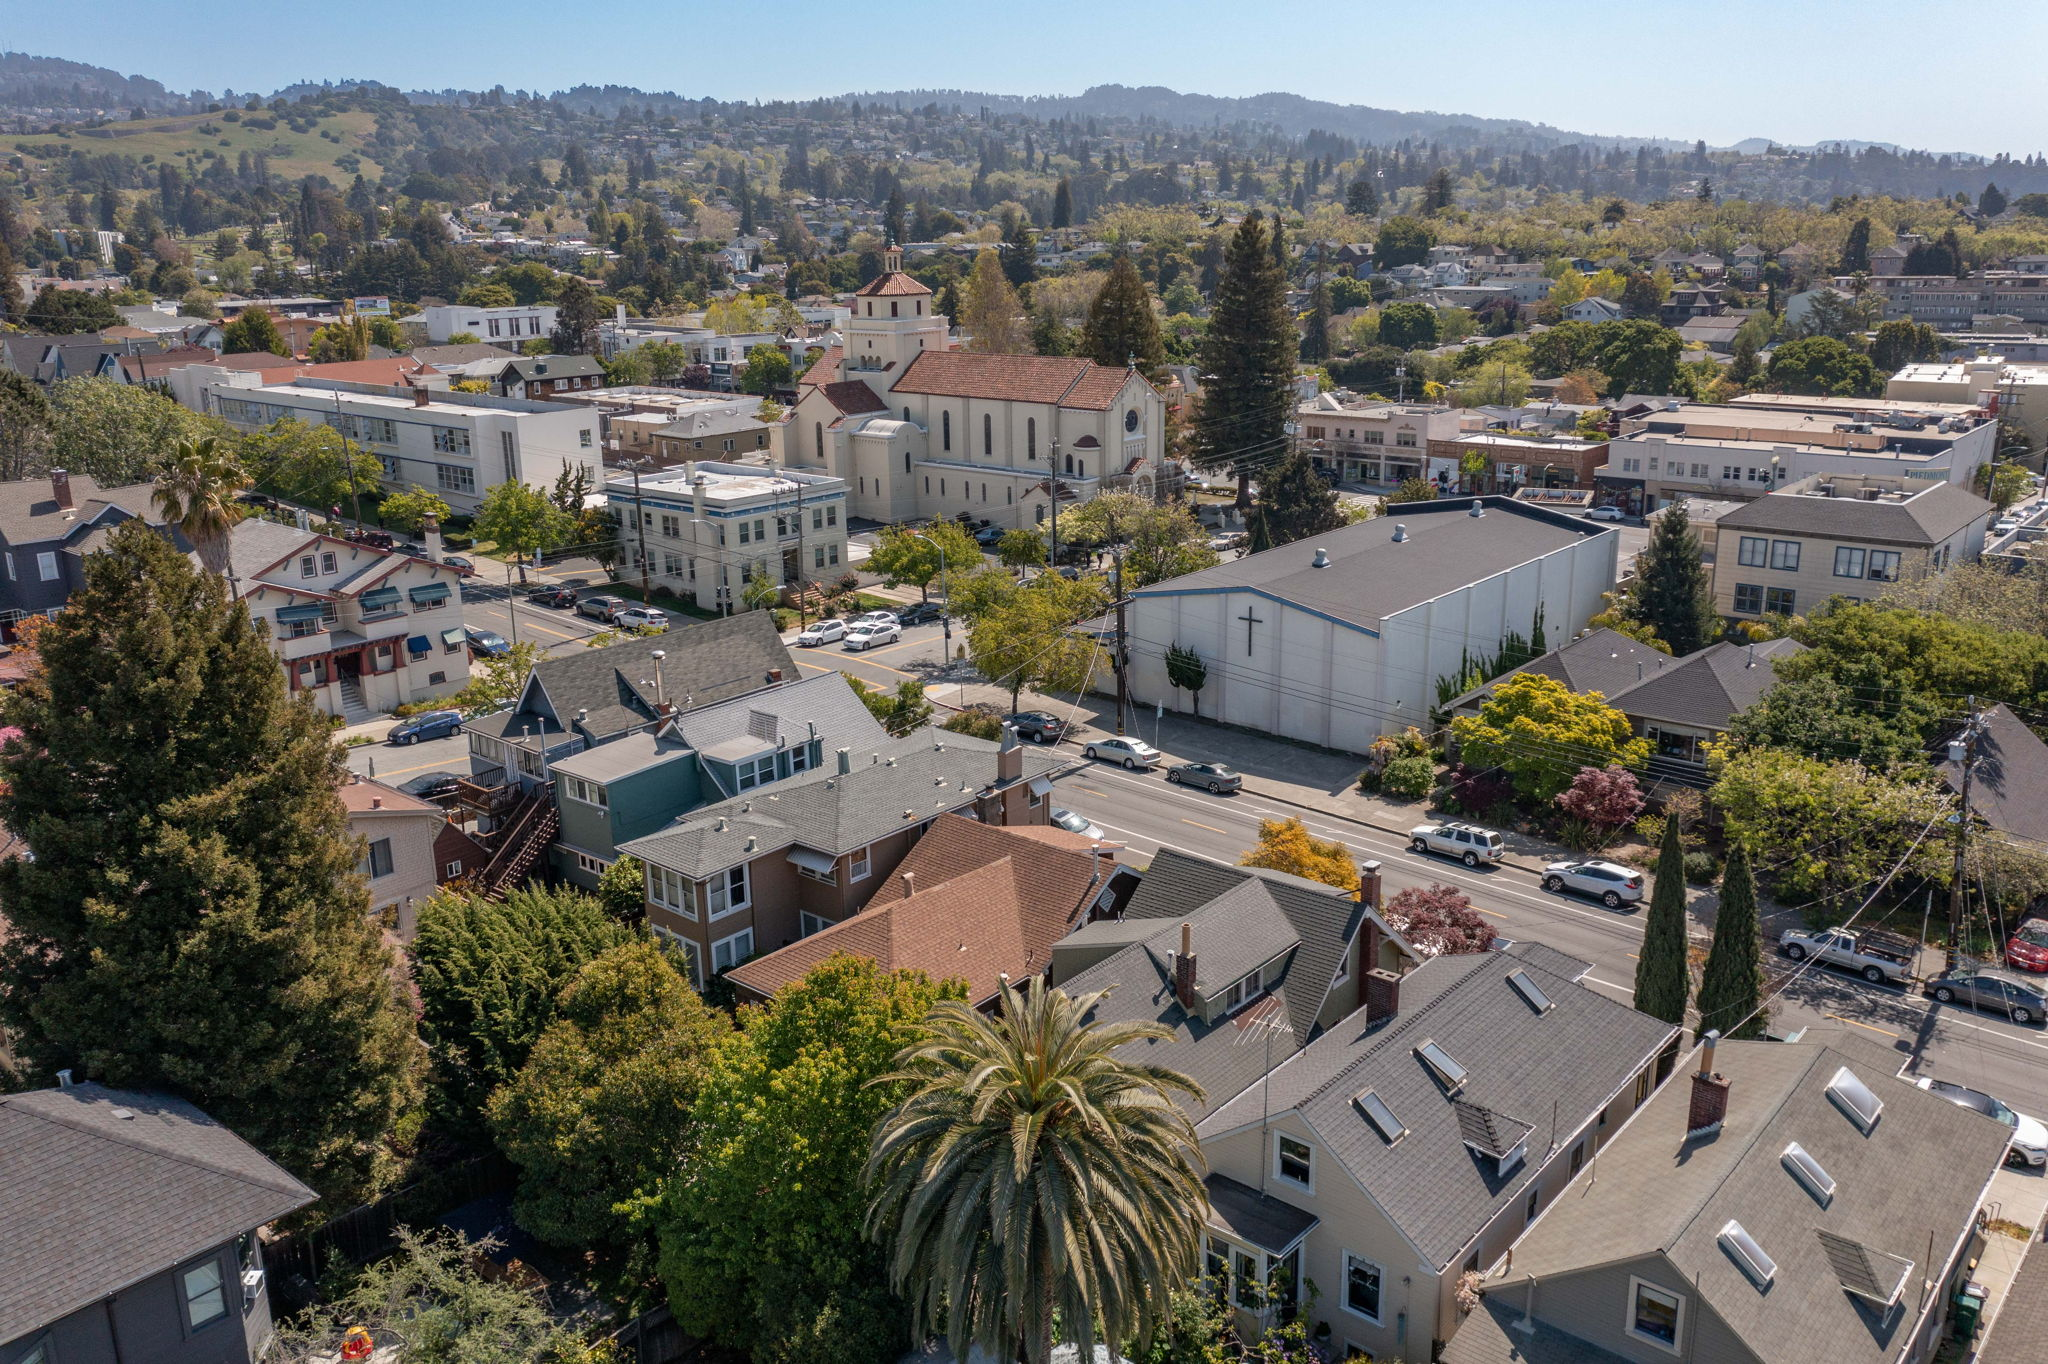 Aerial View from Howe to Piedmont Avenue